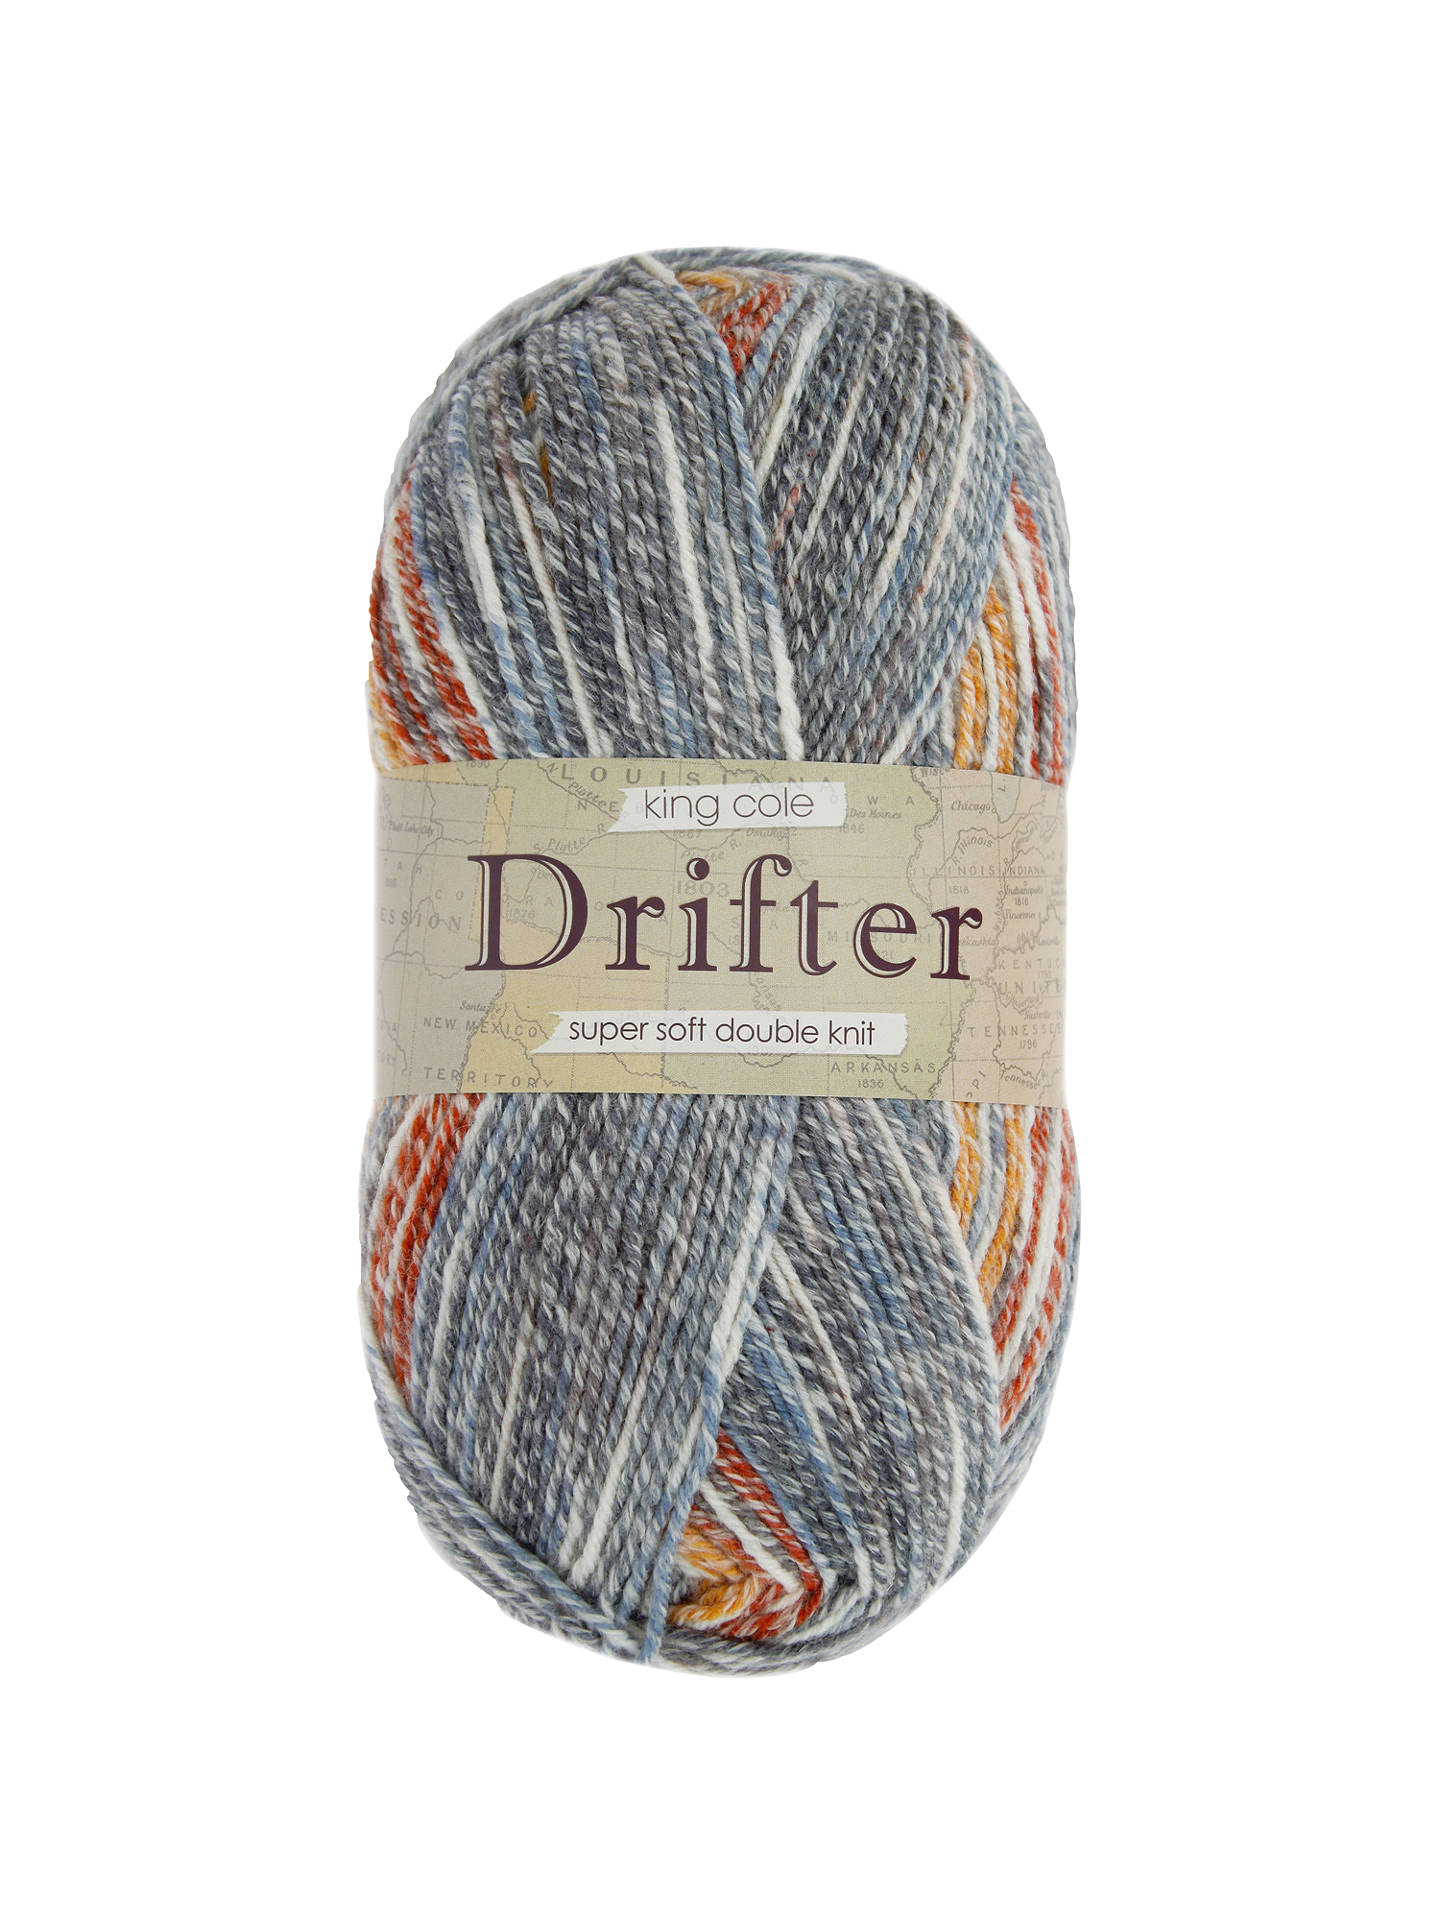 BuyKing Cole Drifter DK Yarn, 100g, Boston Online at johnlewis.com